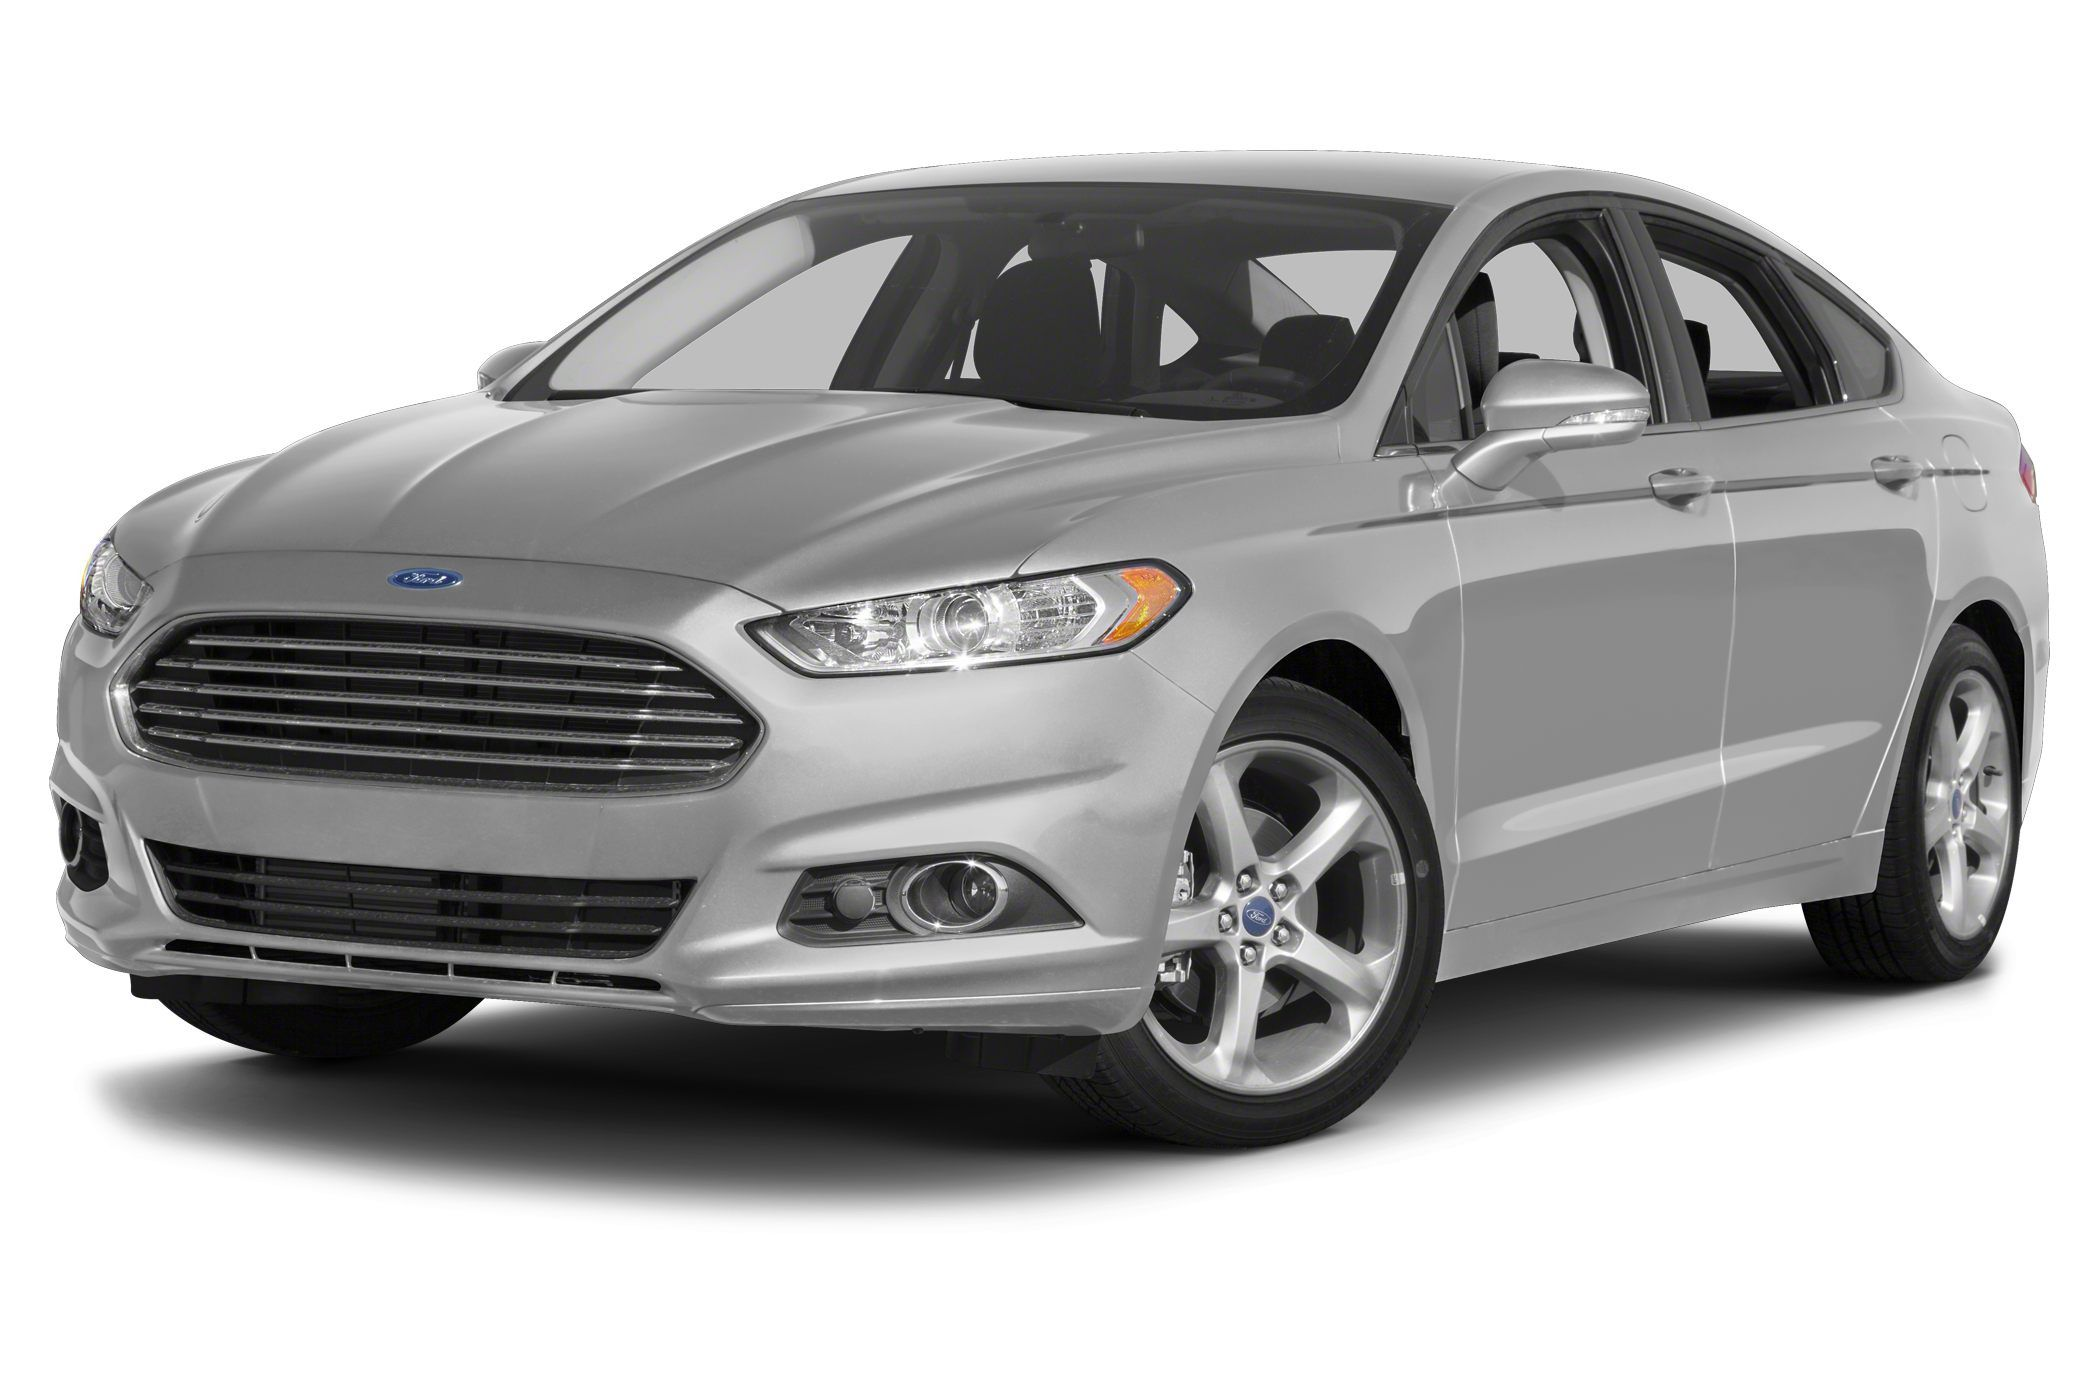 Luxury 2008 Ford Fusion Engine Replacement